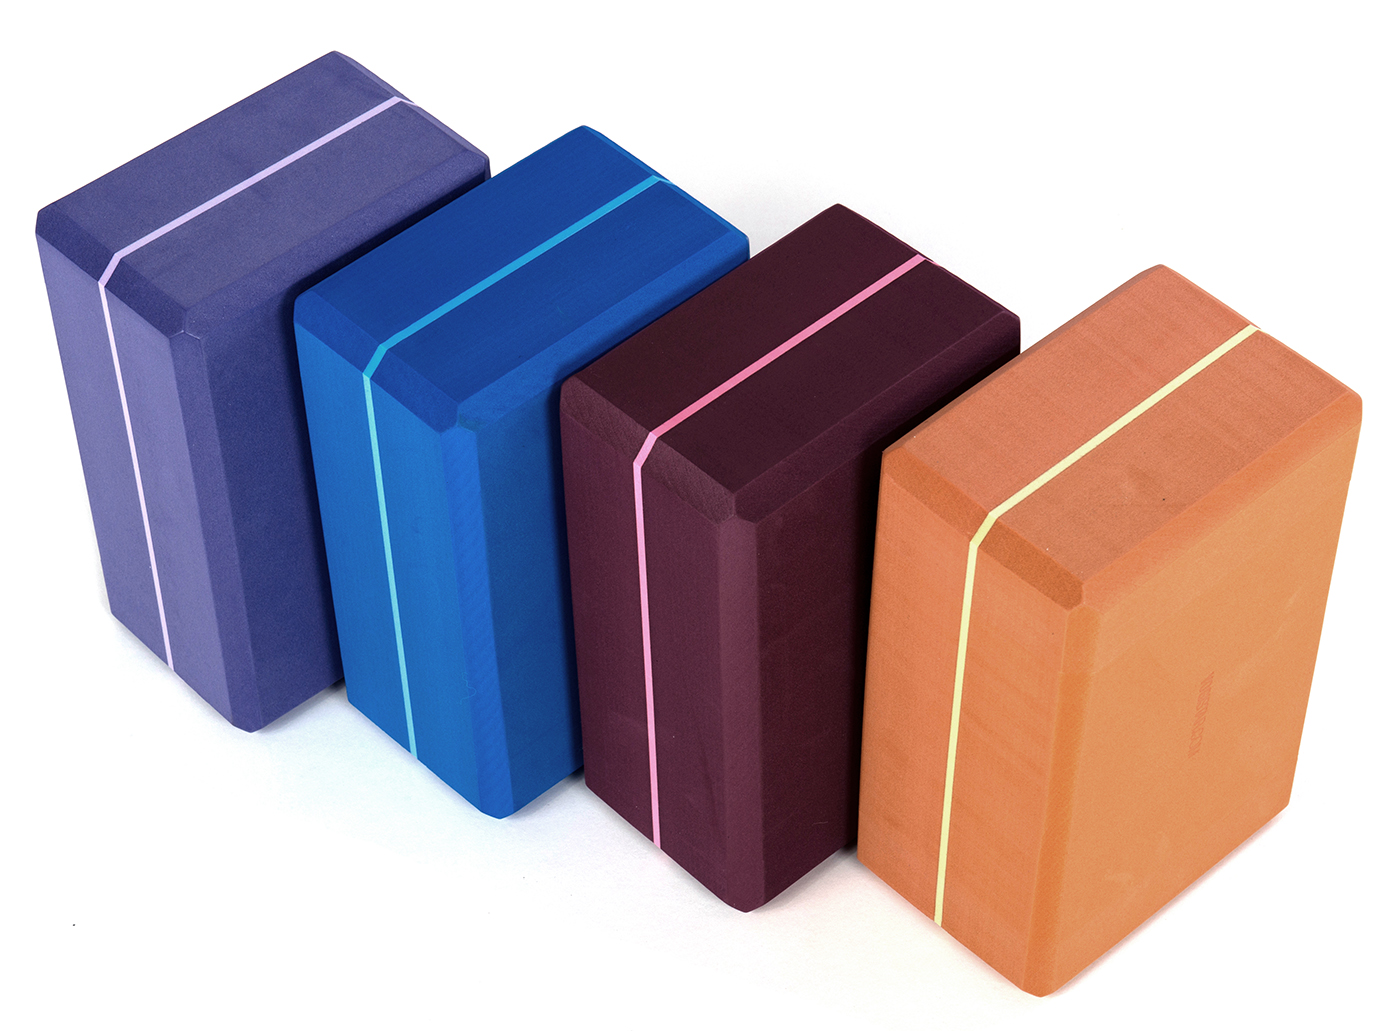 Yoga block - yogiblock 'super size'